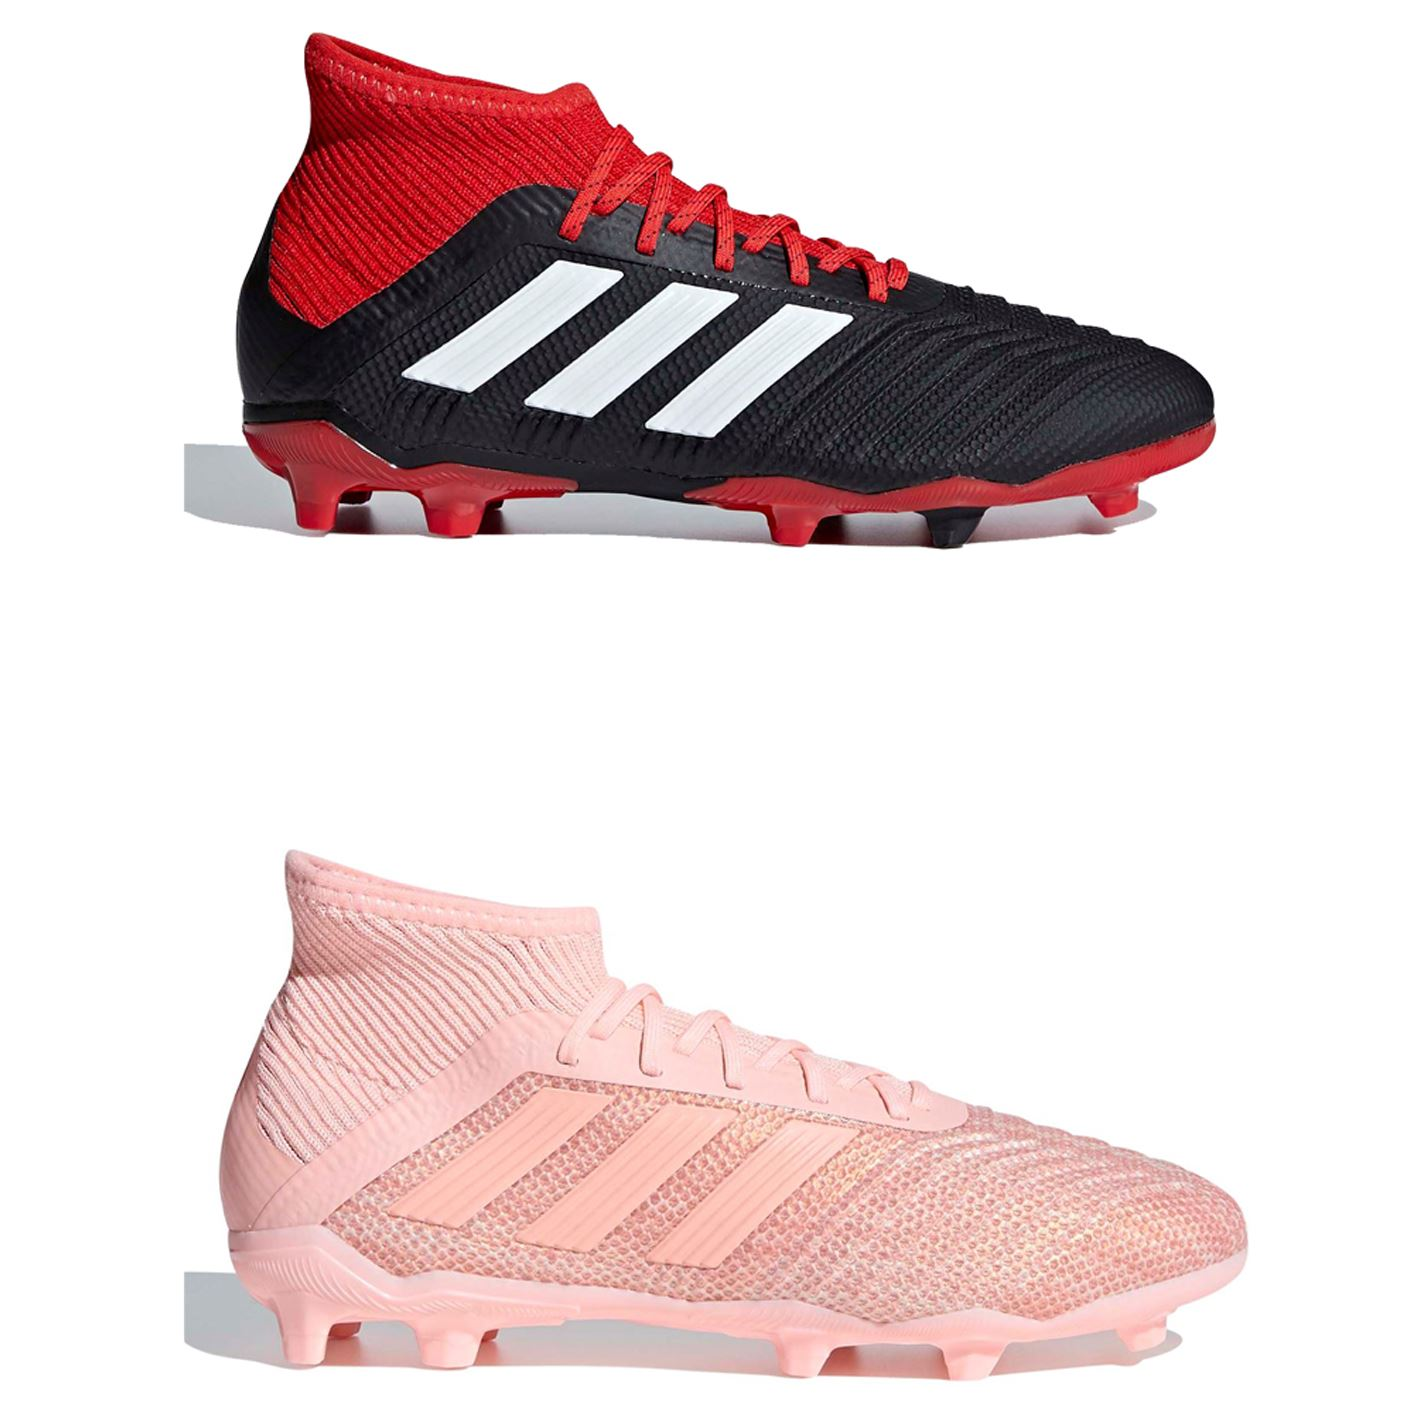 e5c60c47540 ... adidas Predator 18.1 FG Firm Ground Football Boots Childs Soccer Shoes  Cleats ...